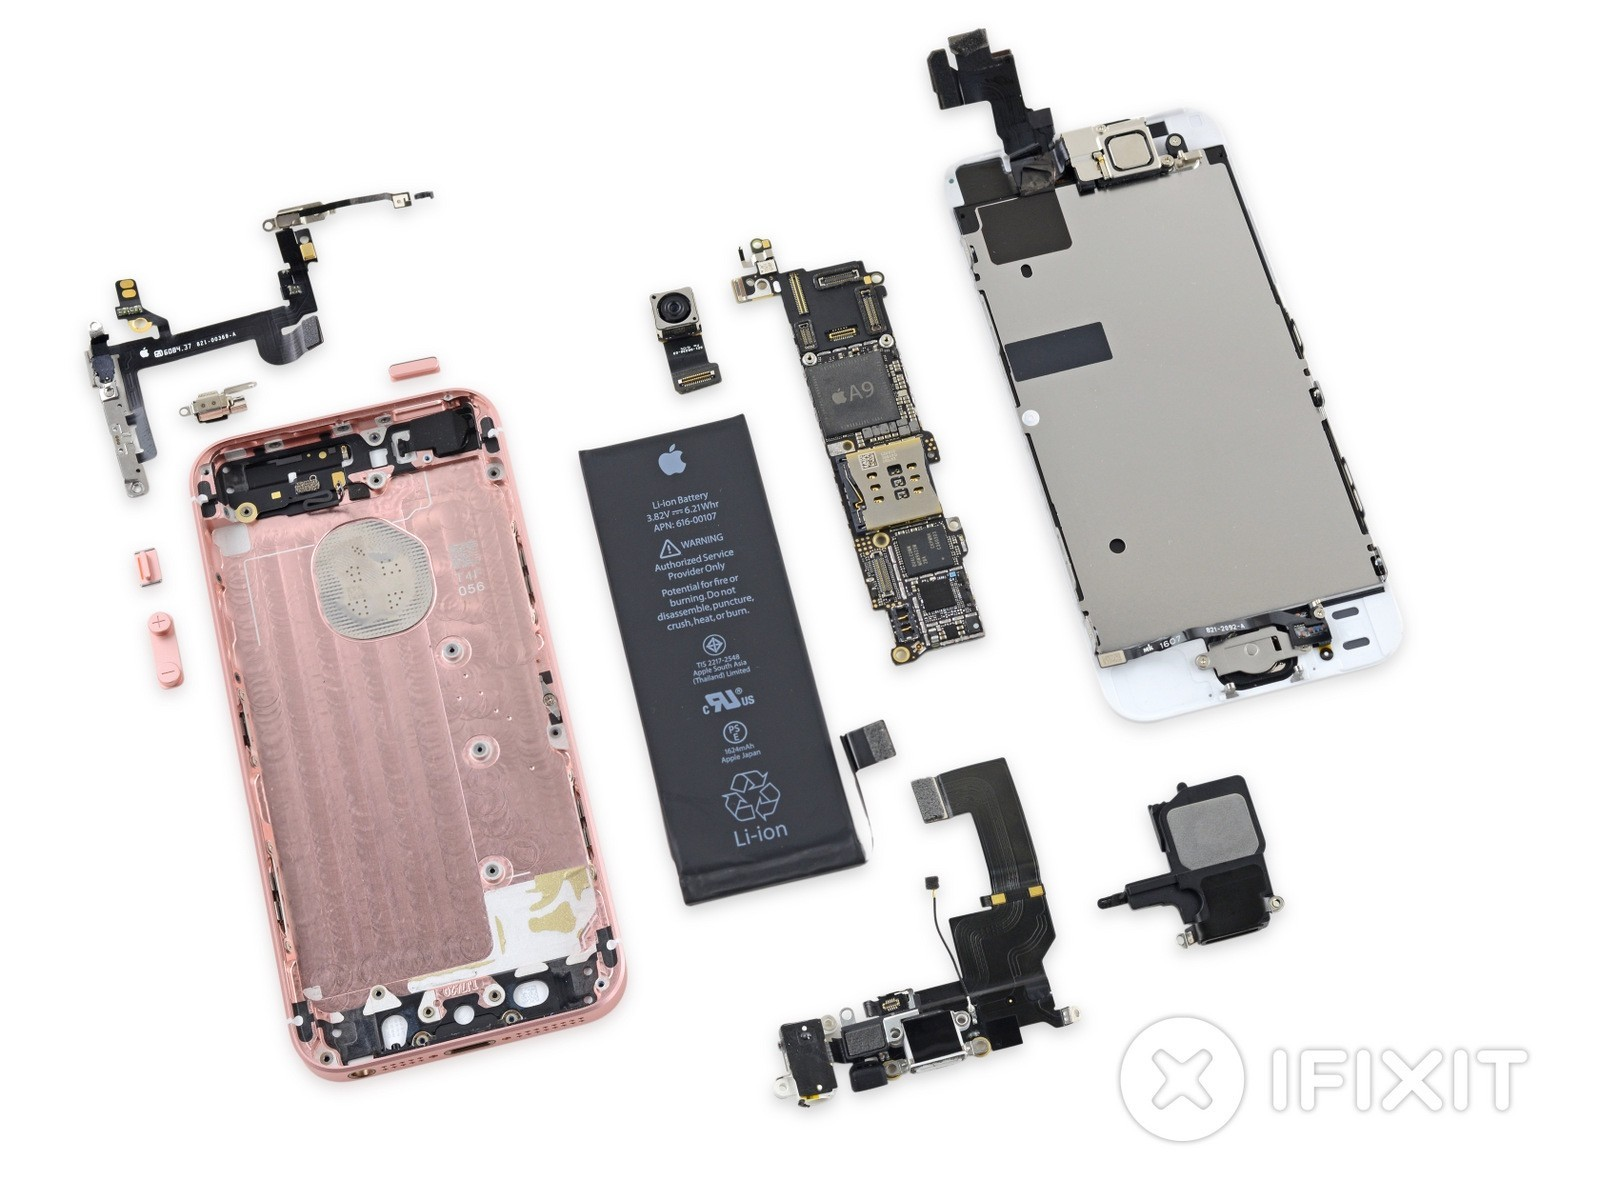 iFixit dives inside the iPhone SE in full teardown